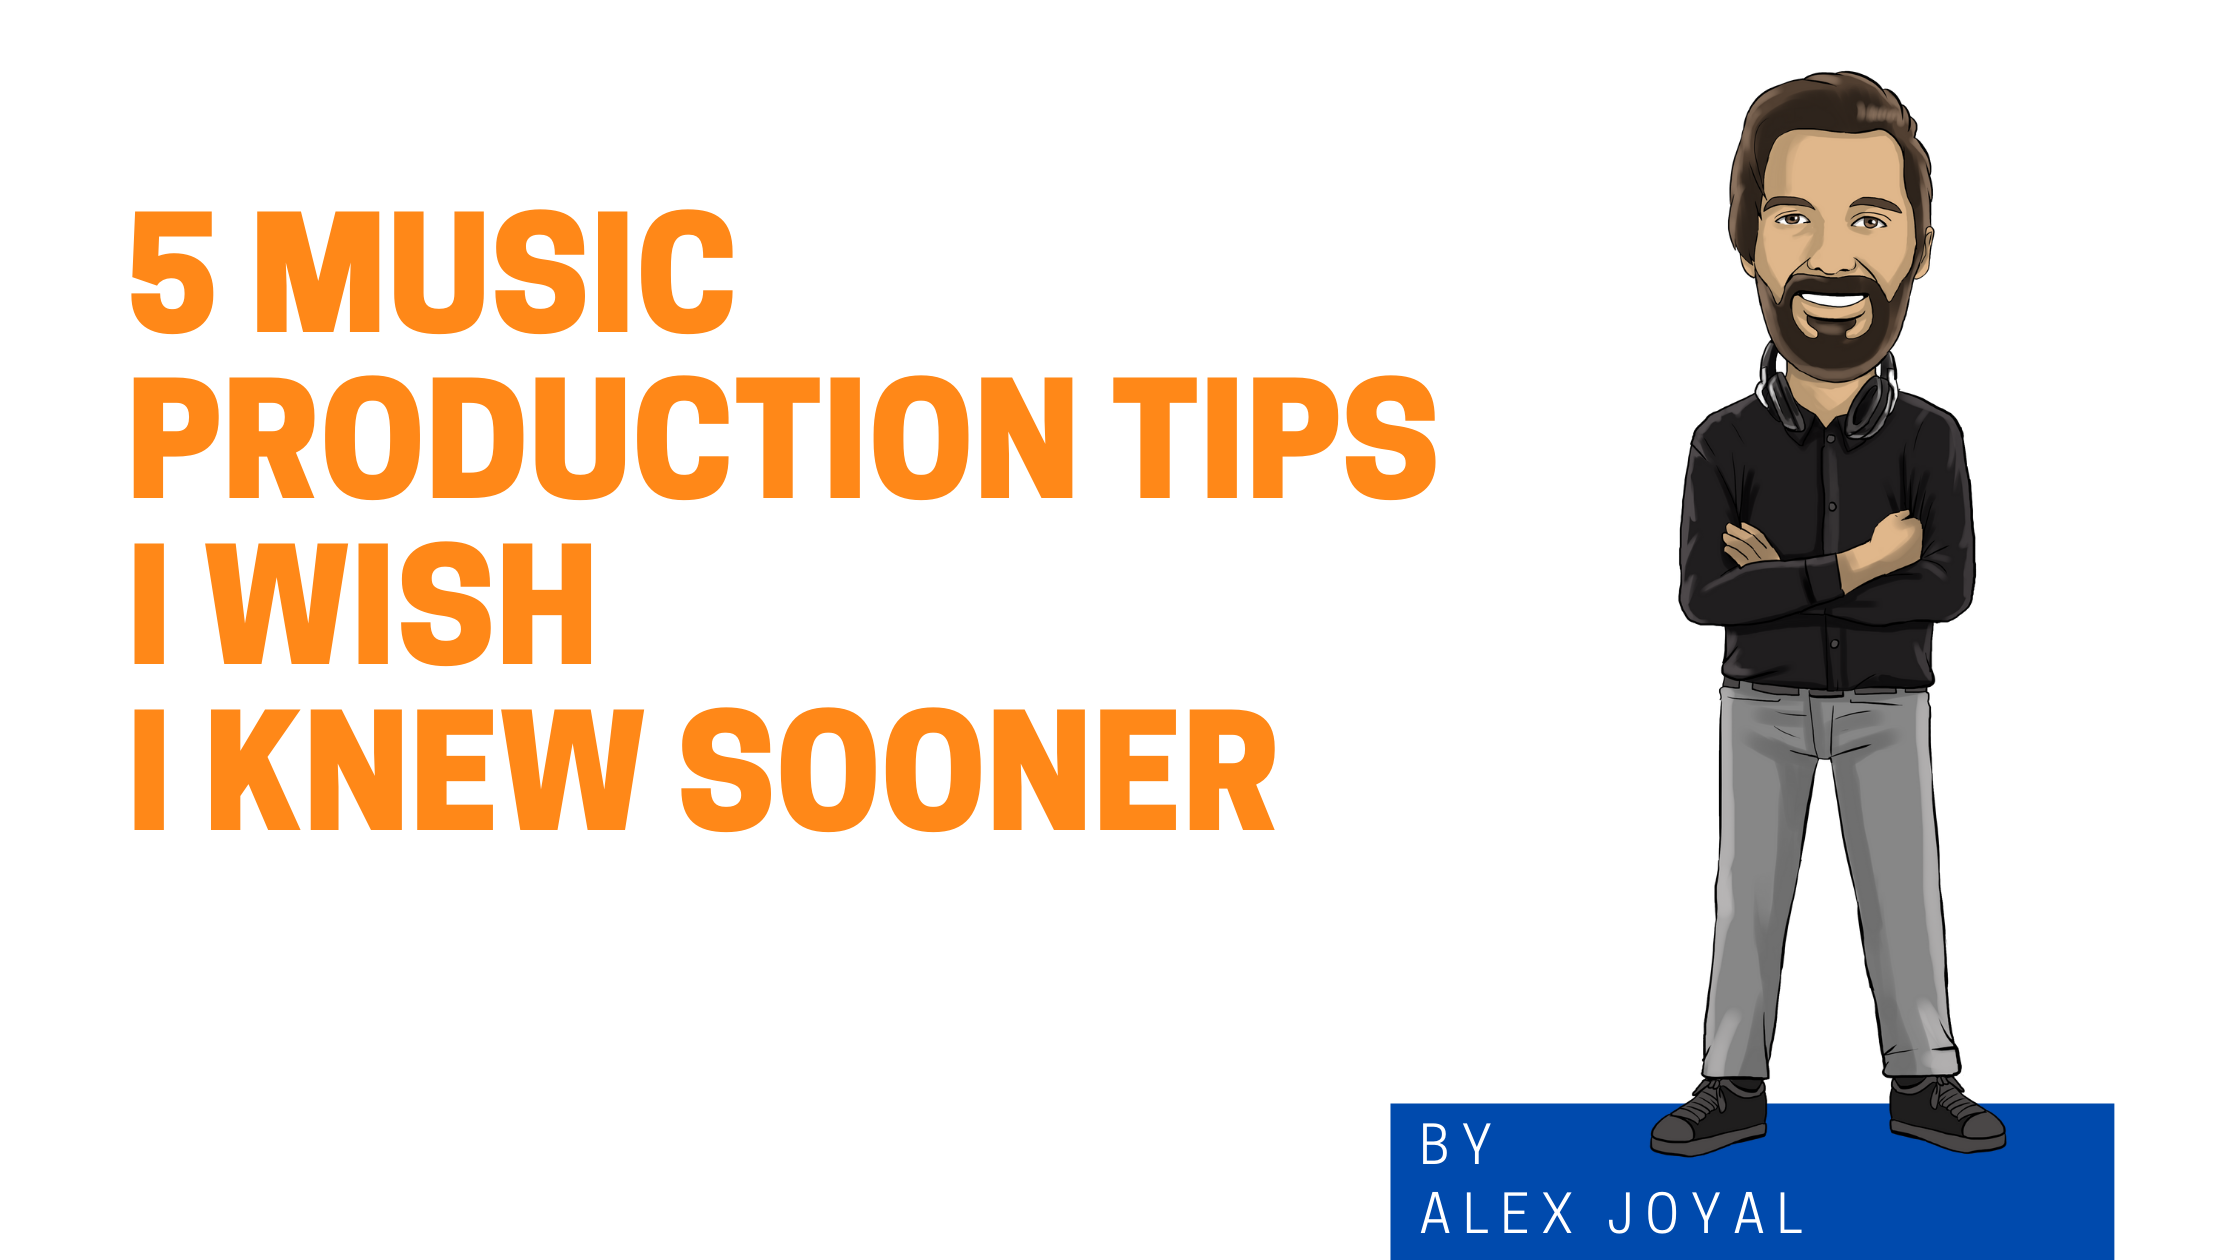 5 Music Production Tips I Wish I Knew Sooner- Alex Cartoon Graphic